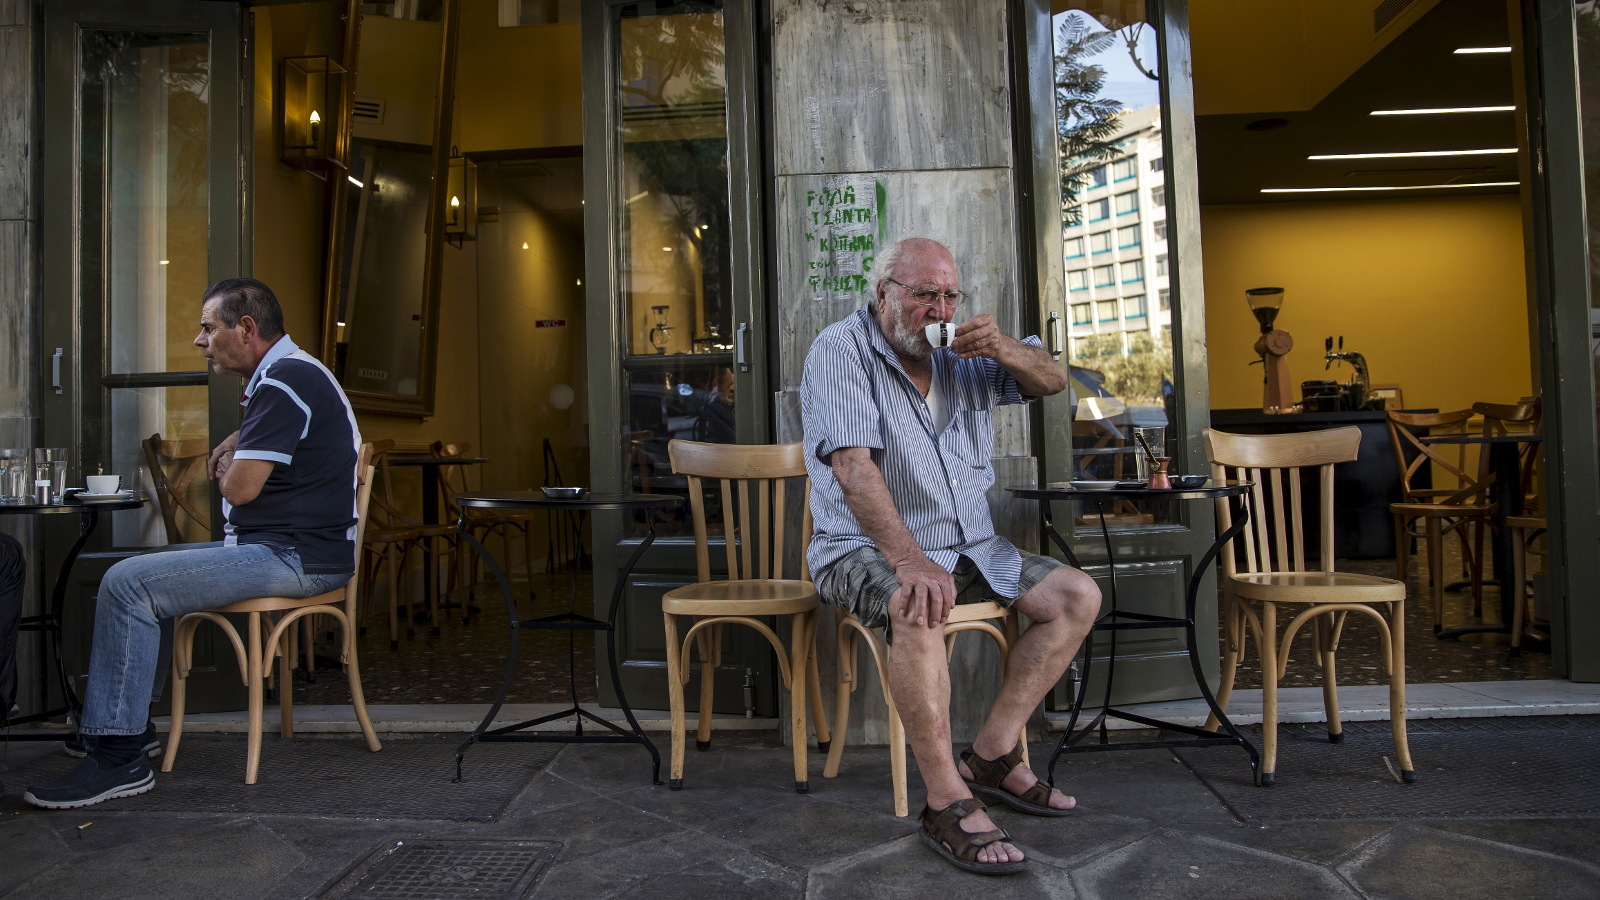 """People sit outside of a coffee shop in Athens, Greece, July 4, 2015. If a 'No' in Sunday's referendum eventually takes Greece out of Europe's single currency, any """"new drachma"""" or temporary payment unit could be worth as little as a fifth of the euro now in circulation. REUTERS/Marko Djurica"""